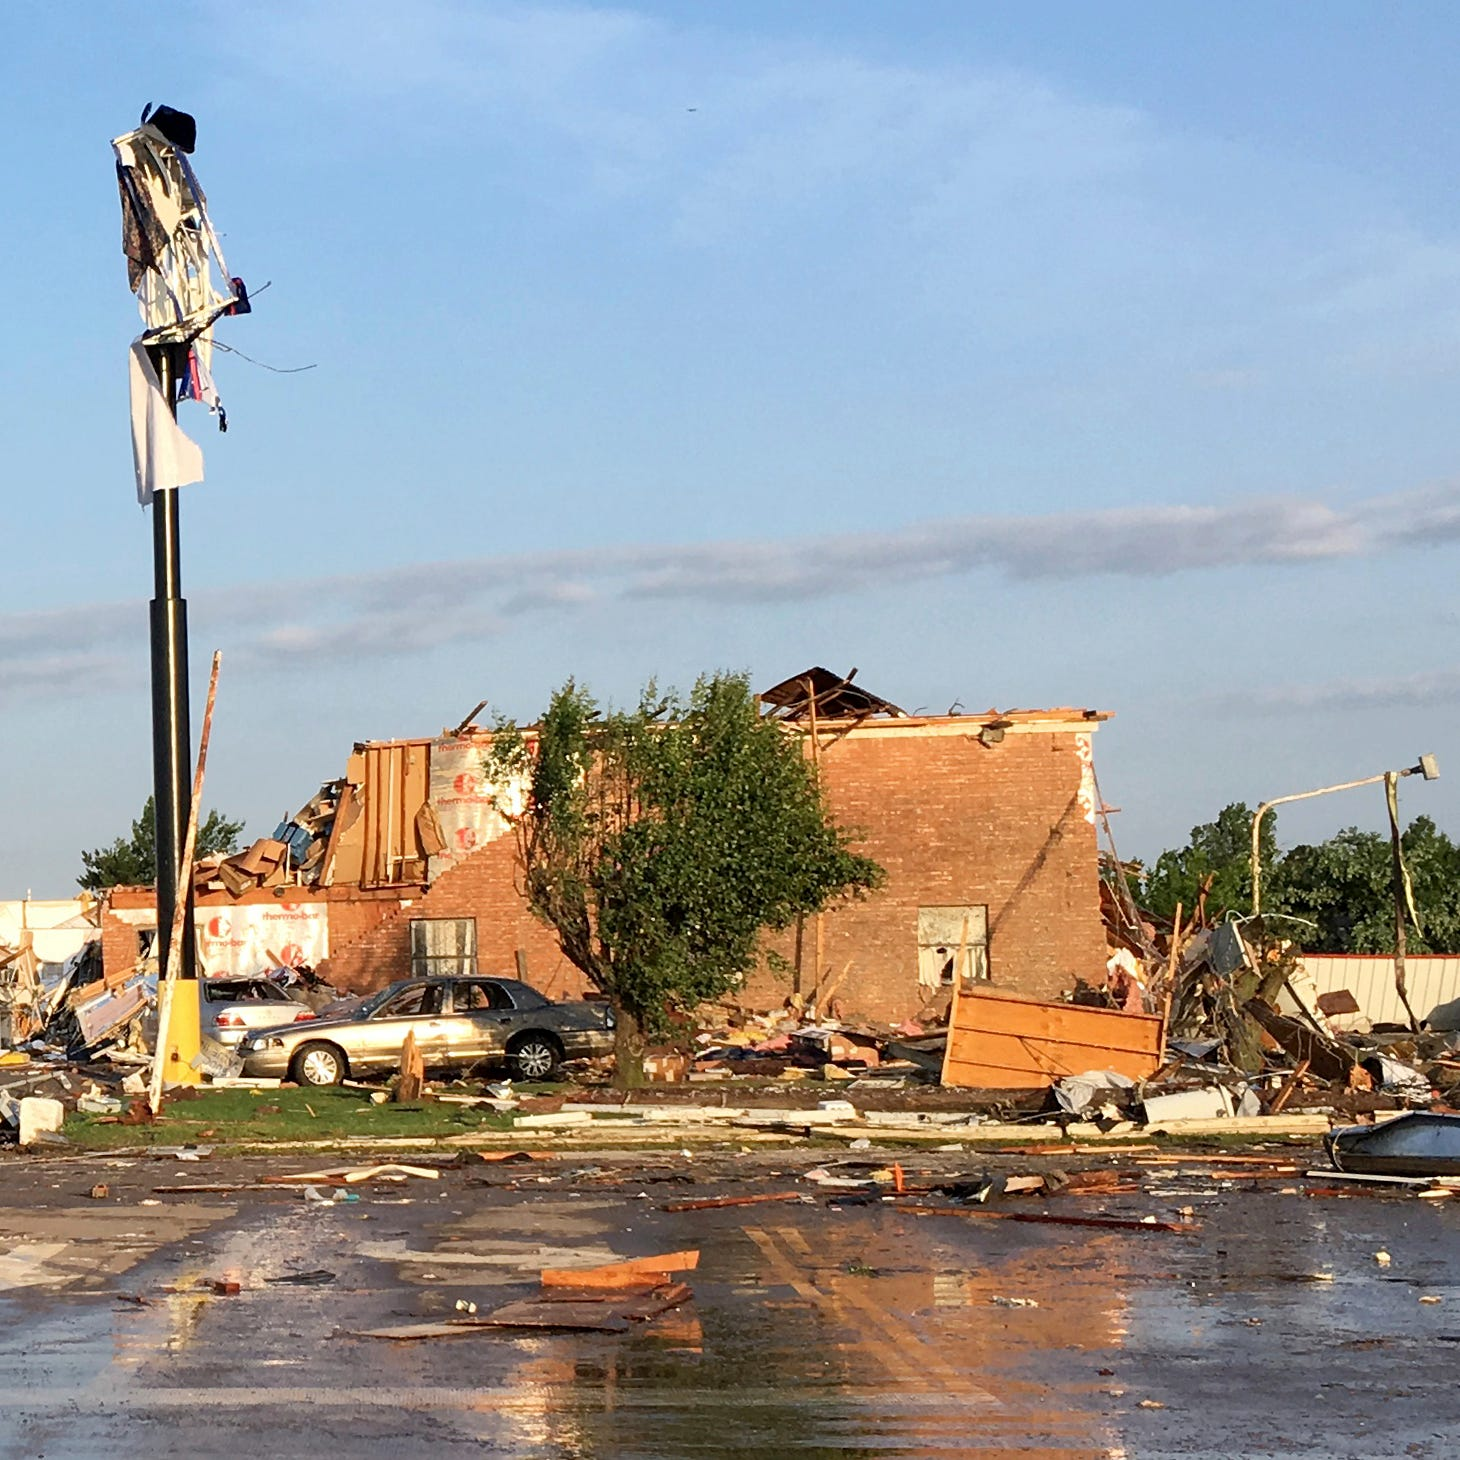 Tornado tears through Oklahoma town, killing 2, injuring 29